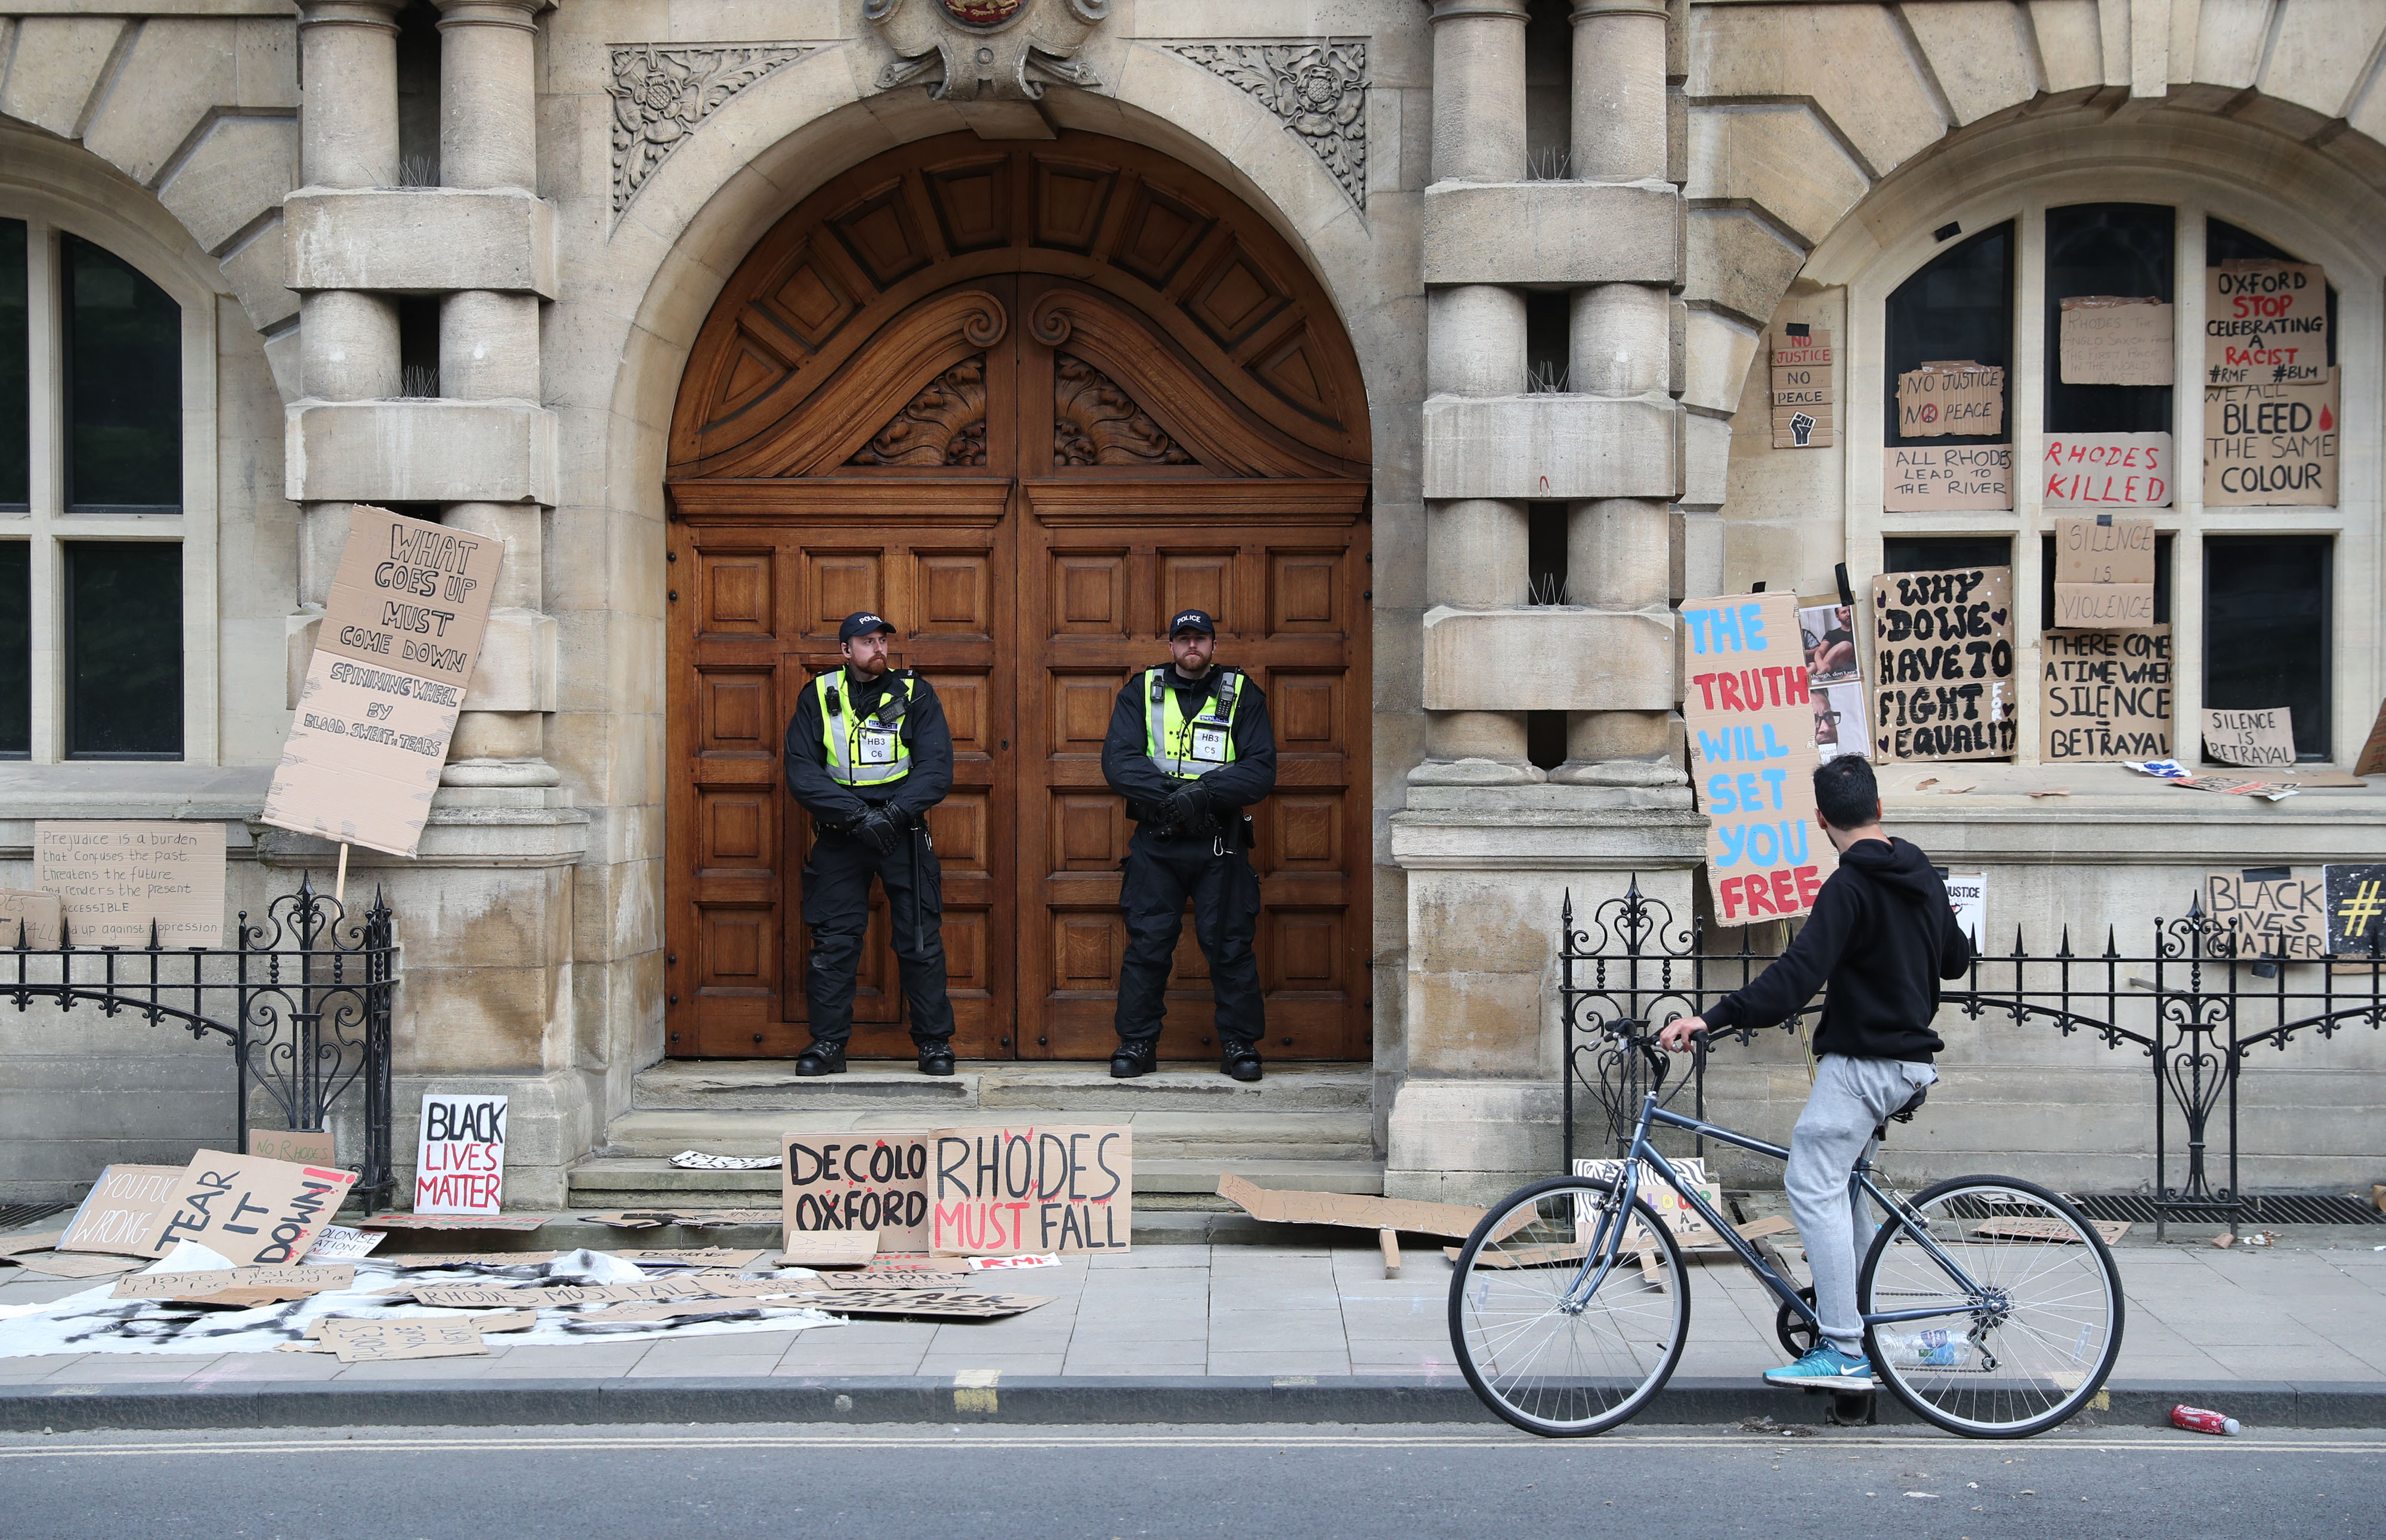 Police during a protest calling for the removal of the statue of 19th century imperialist, politician Cecil Rhodes from an Oxford college which has reignited amid anti-racism demonstrations.